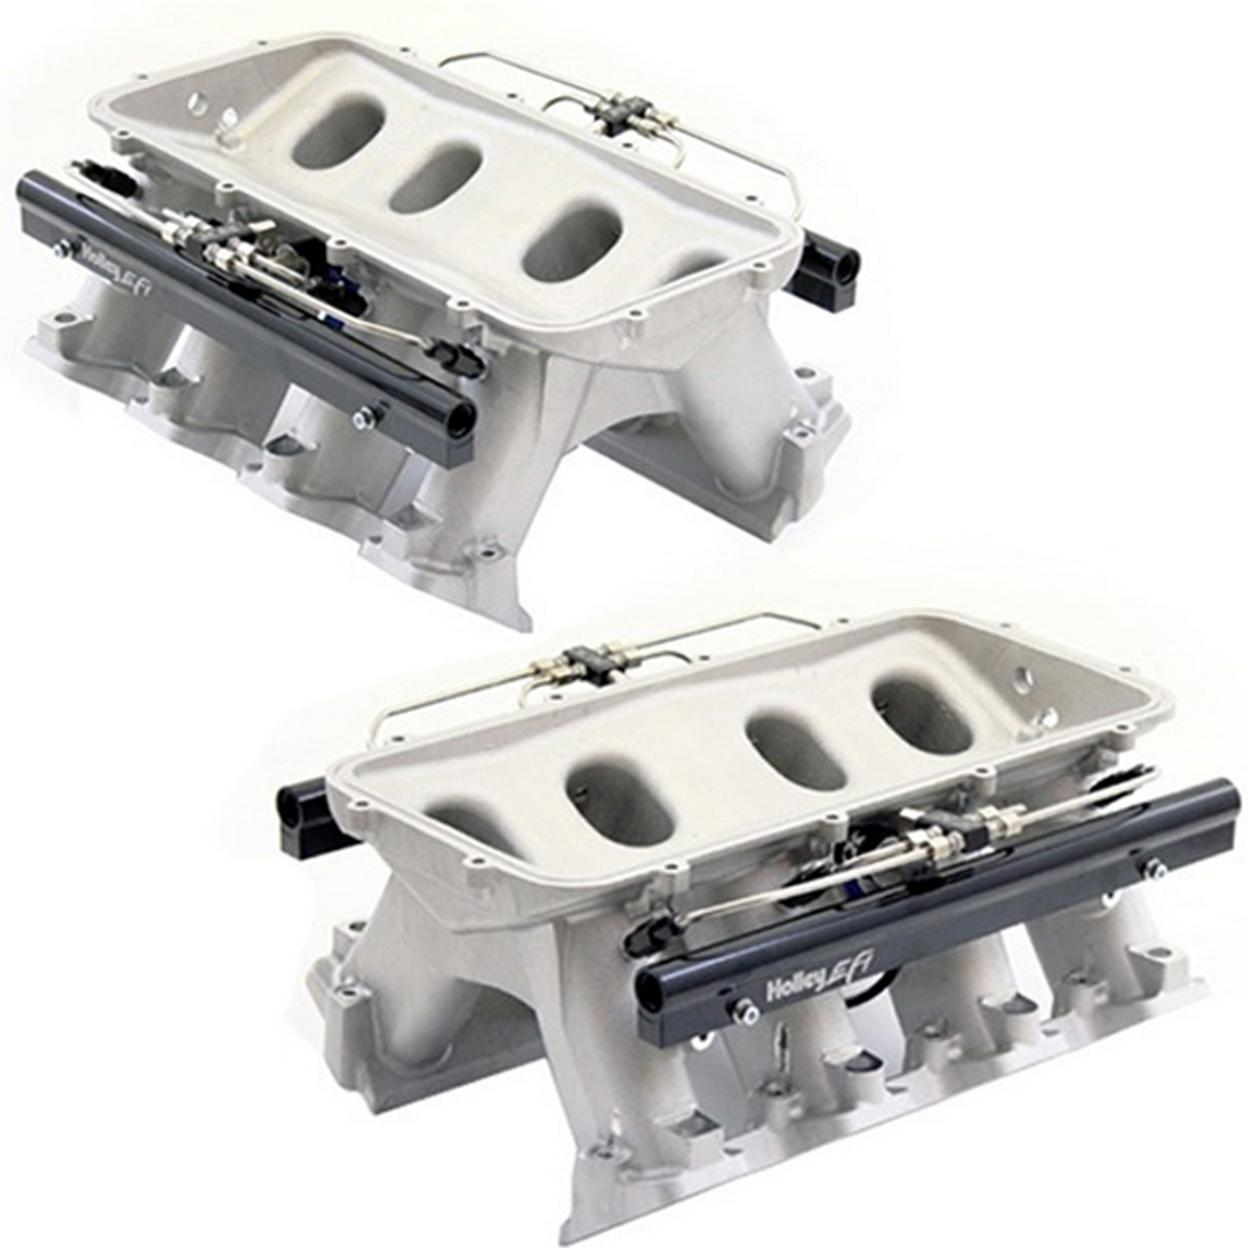 Snow Performance SNO-INTAKE004 HOLLEY HI-RAM MANIFOLD FOR CATHEDRAL PORT HEADS W/ Snow DIRECT PORT